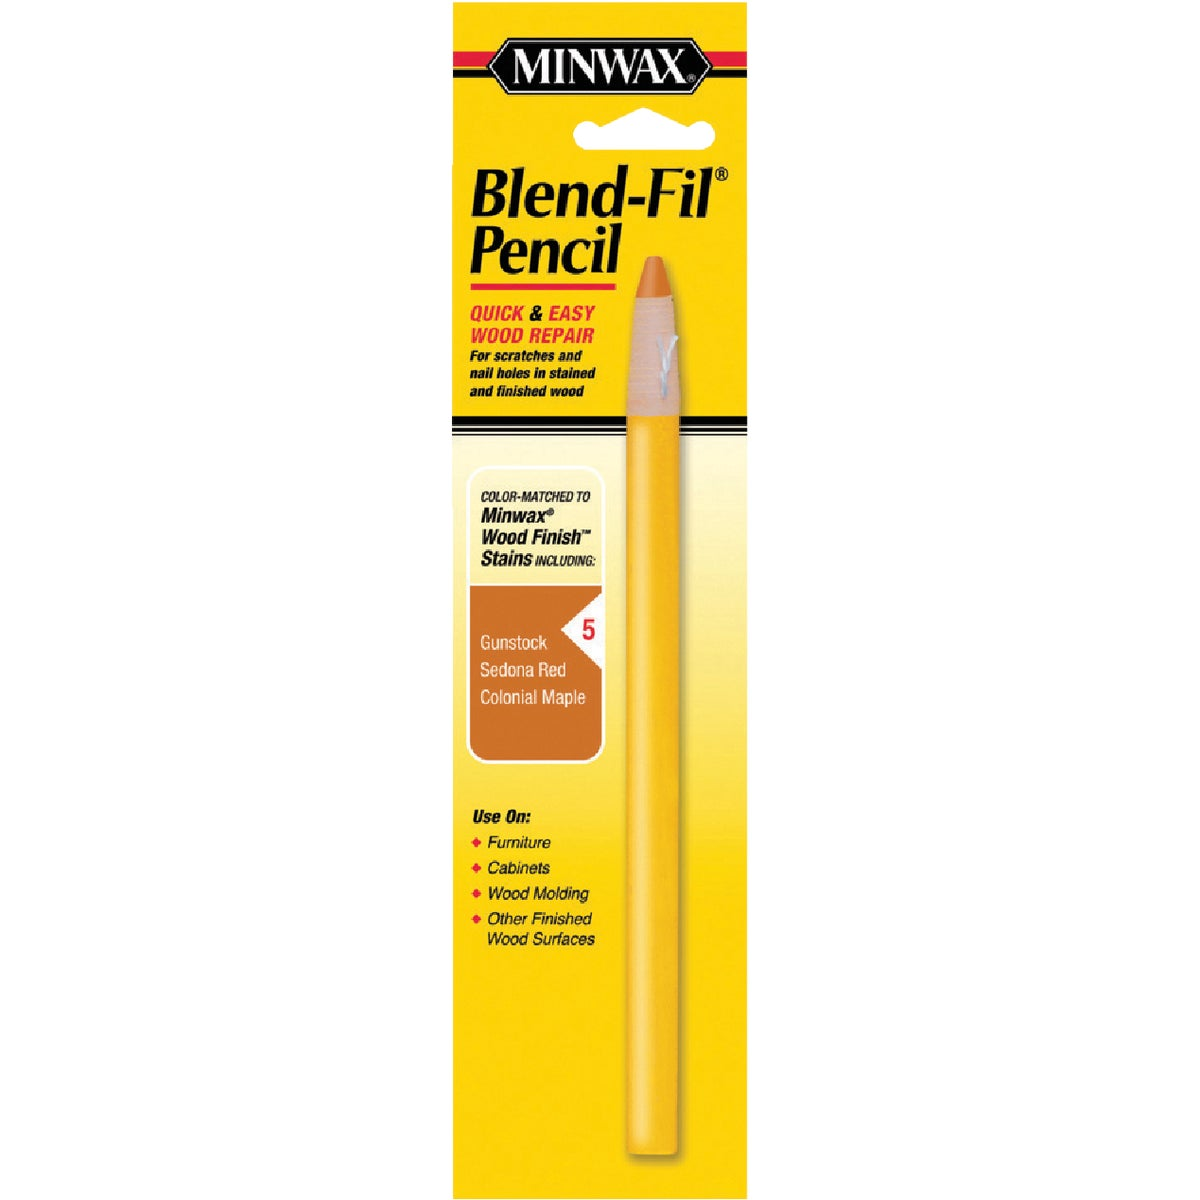 #5 BLEND-FIL PENCIL - 11005 by Minwax Company